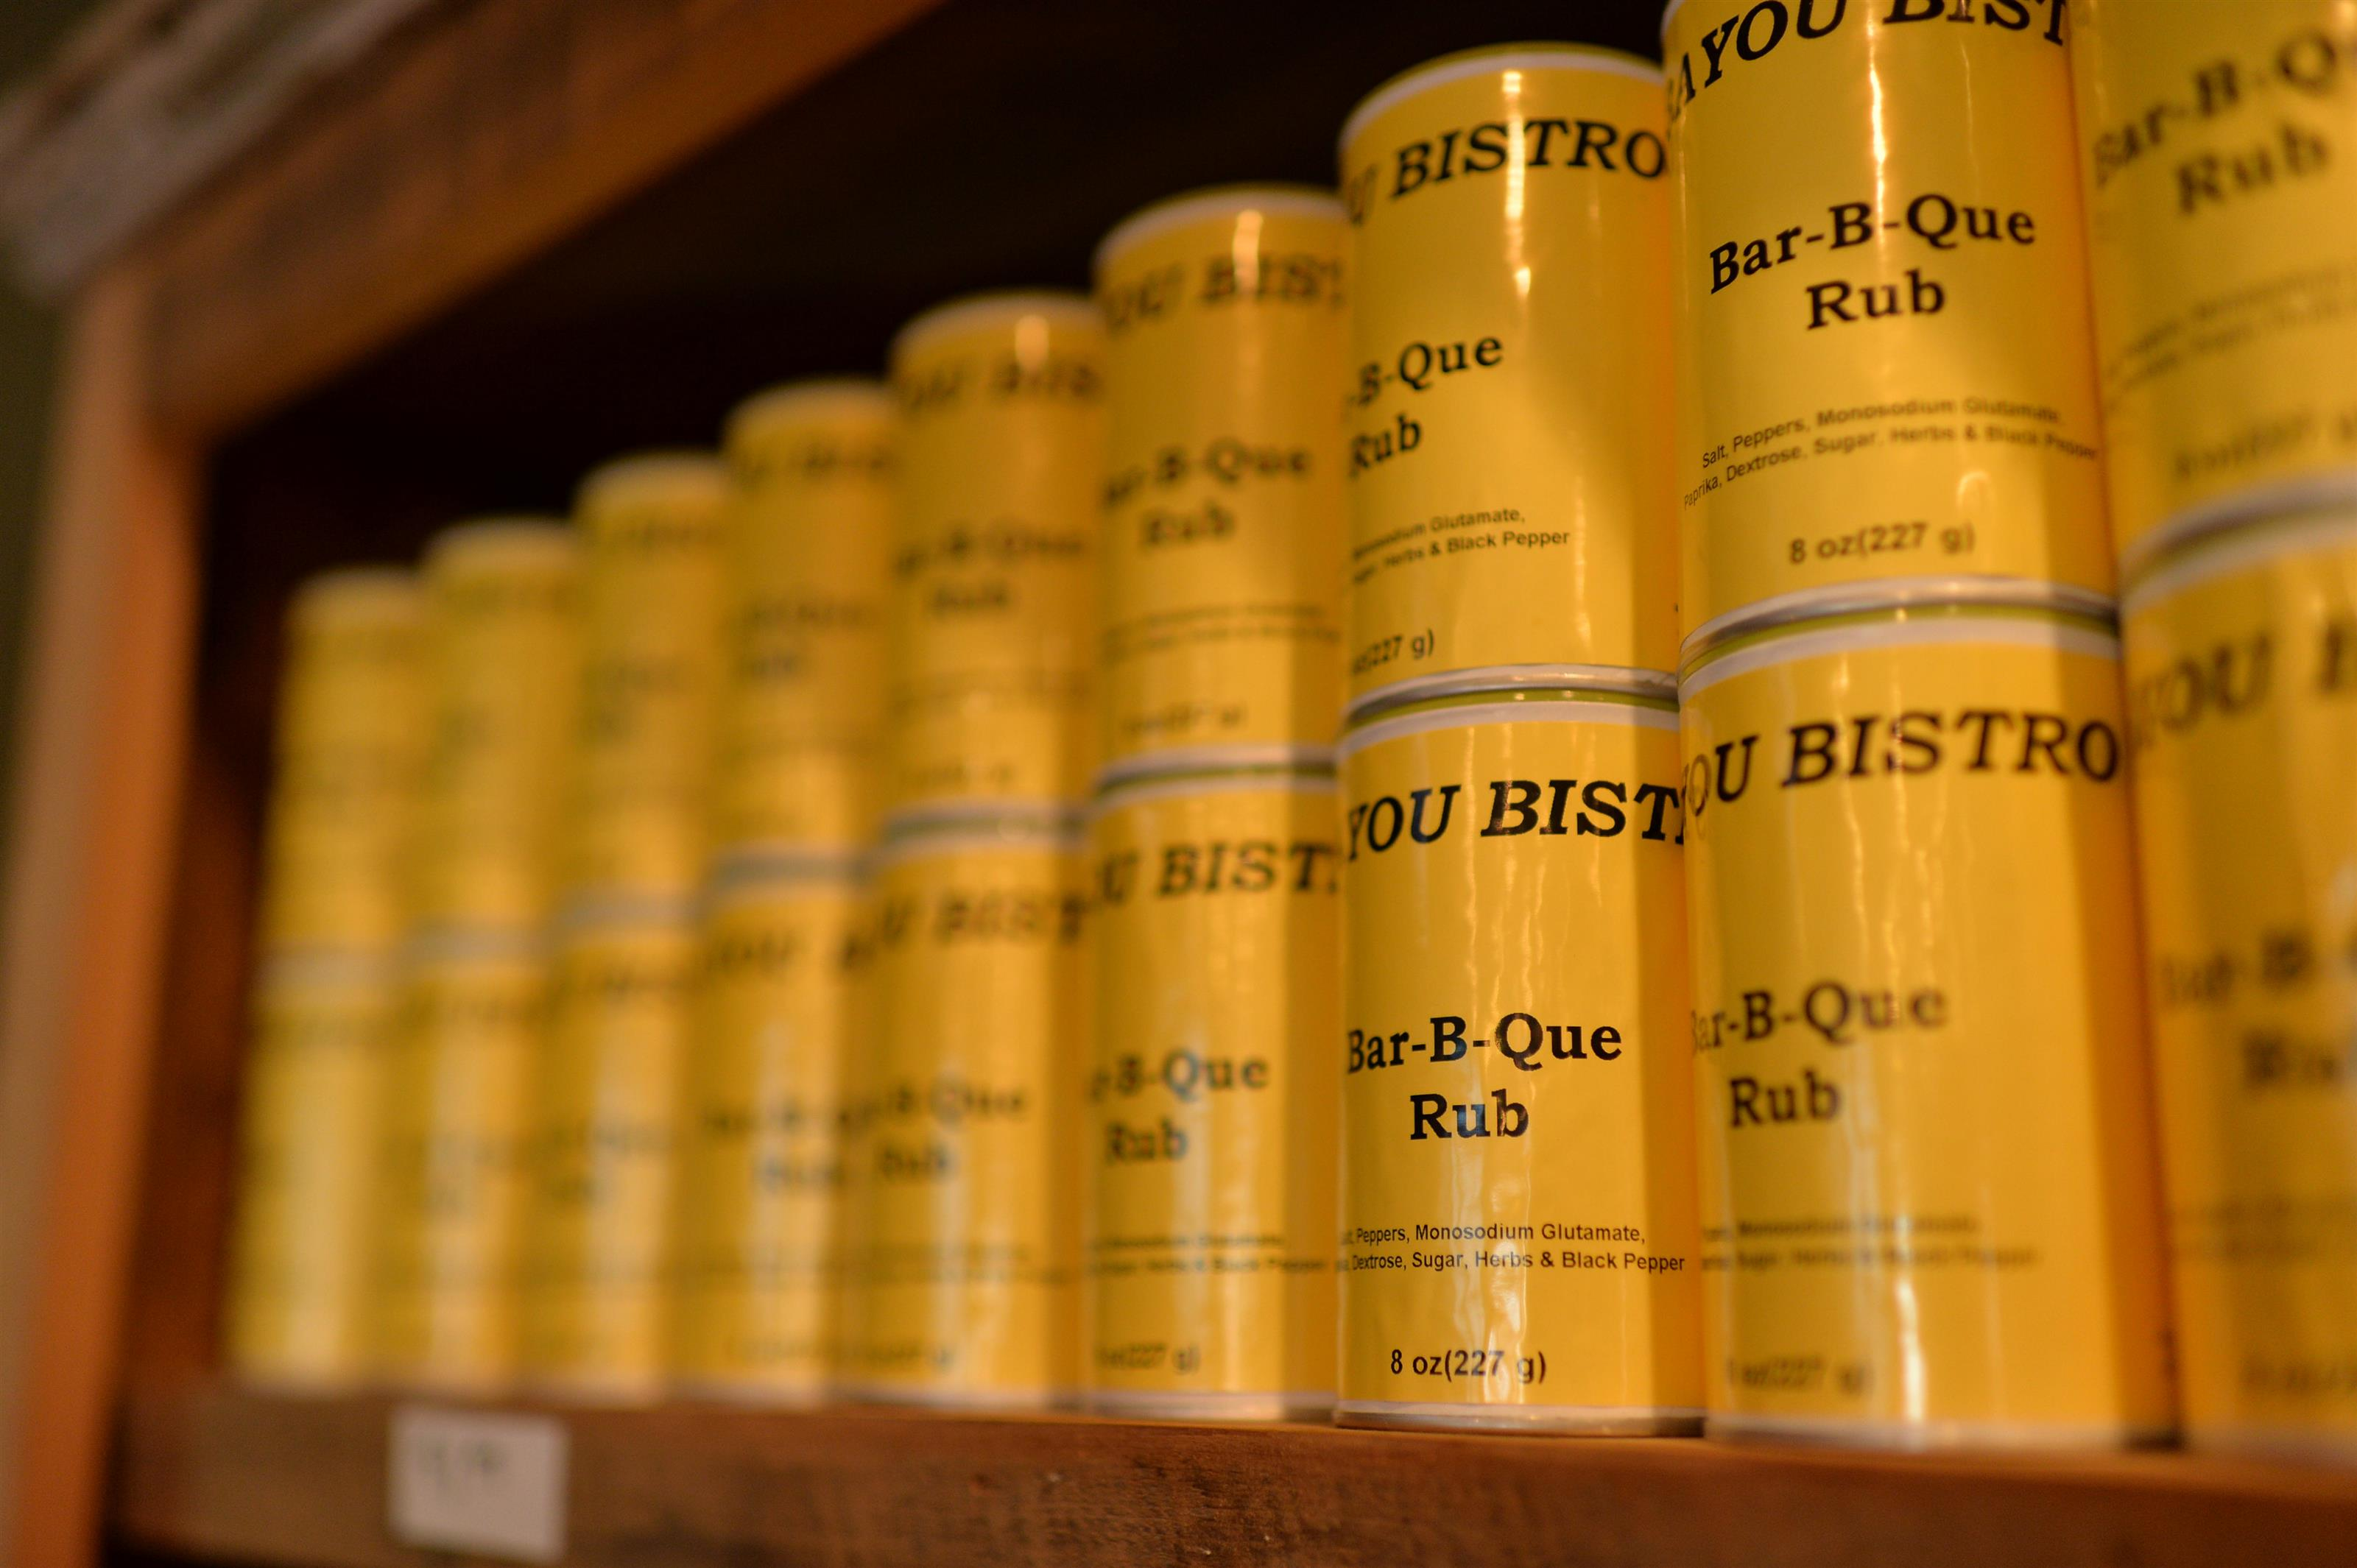 bayou bistro bar-b-que rub lined up on a shelf